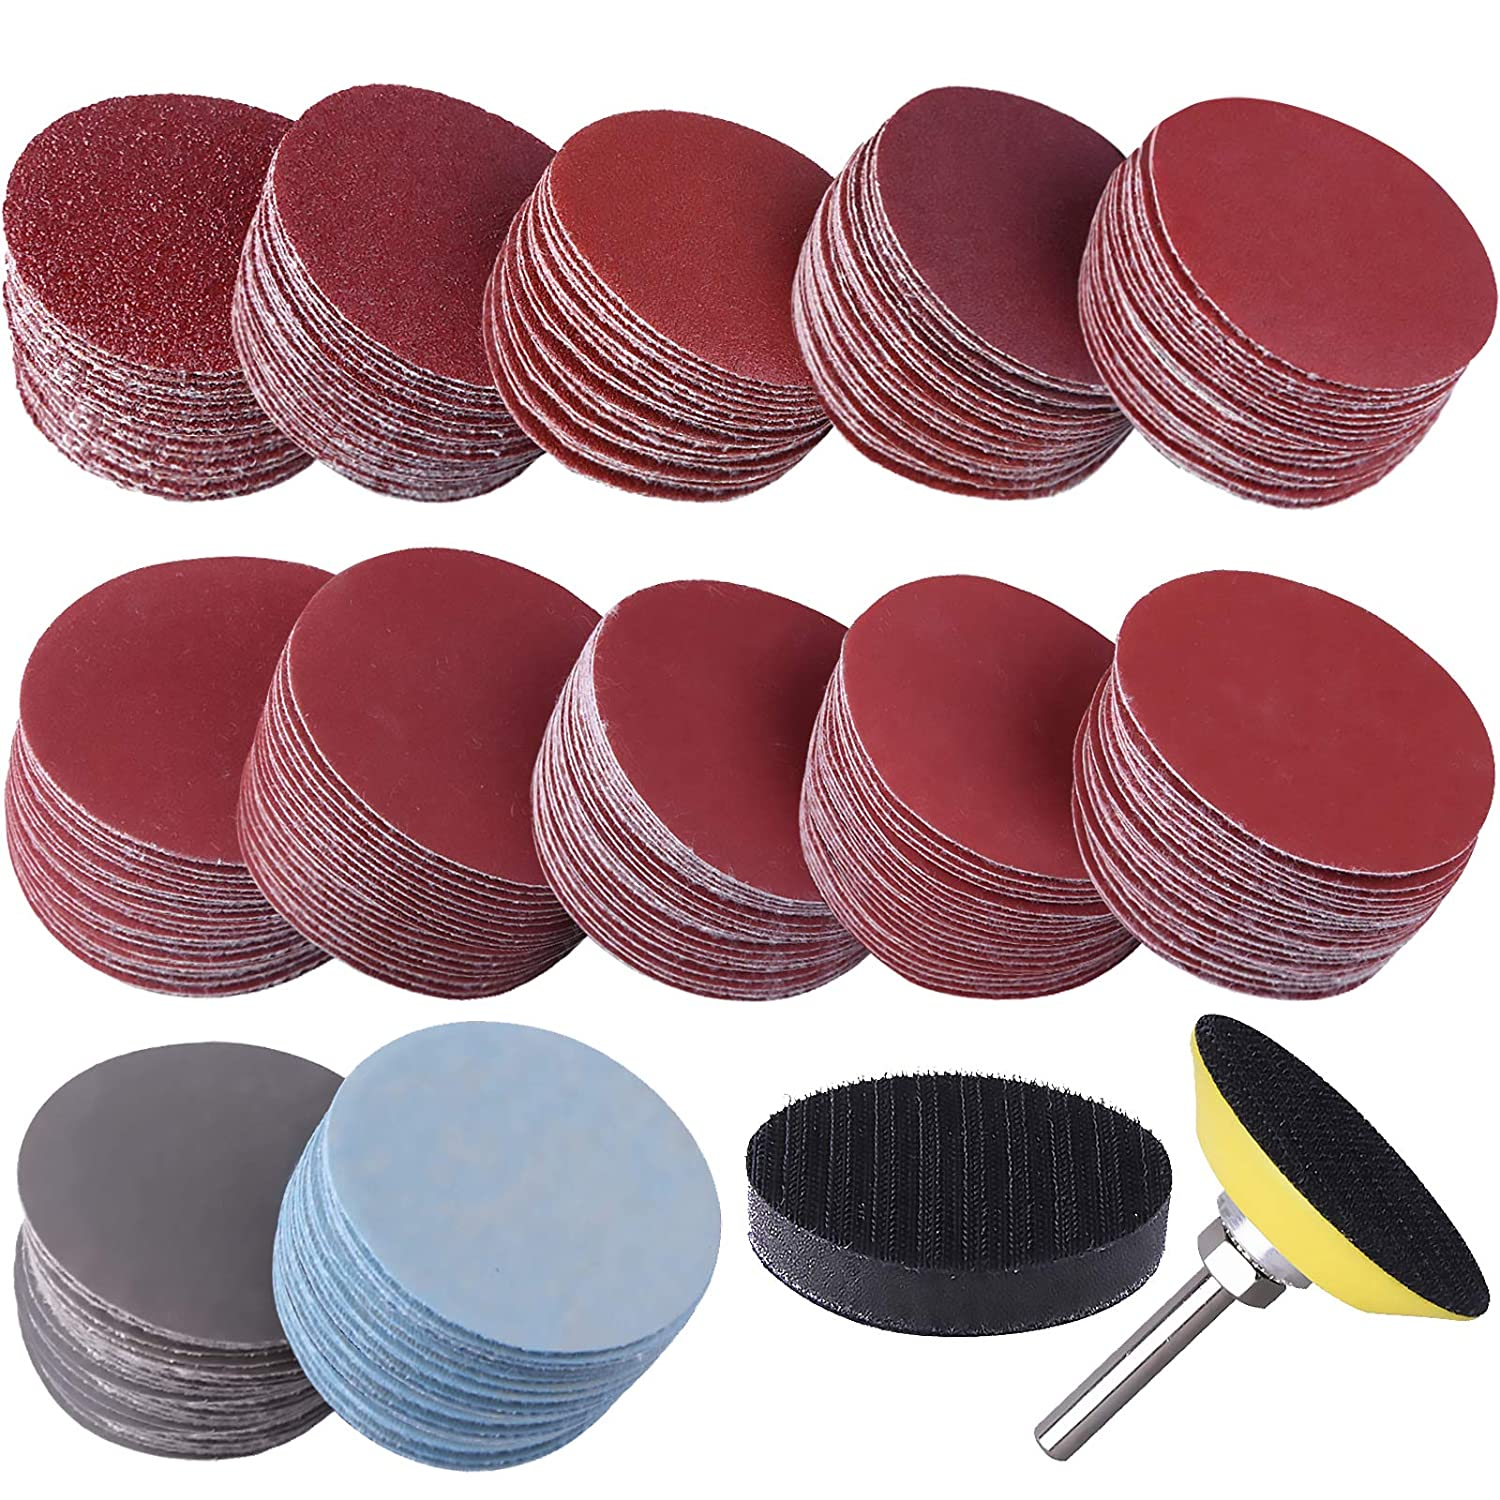 SIQUK 300 Pcs 2 Inch Sanding Limited time trial price Discs 4 Jacksonville Mall Back 1 Shank with pc